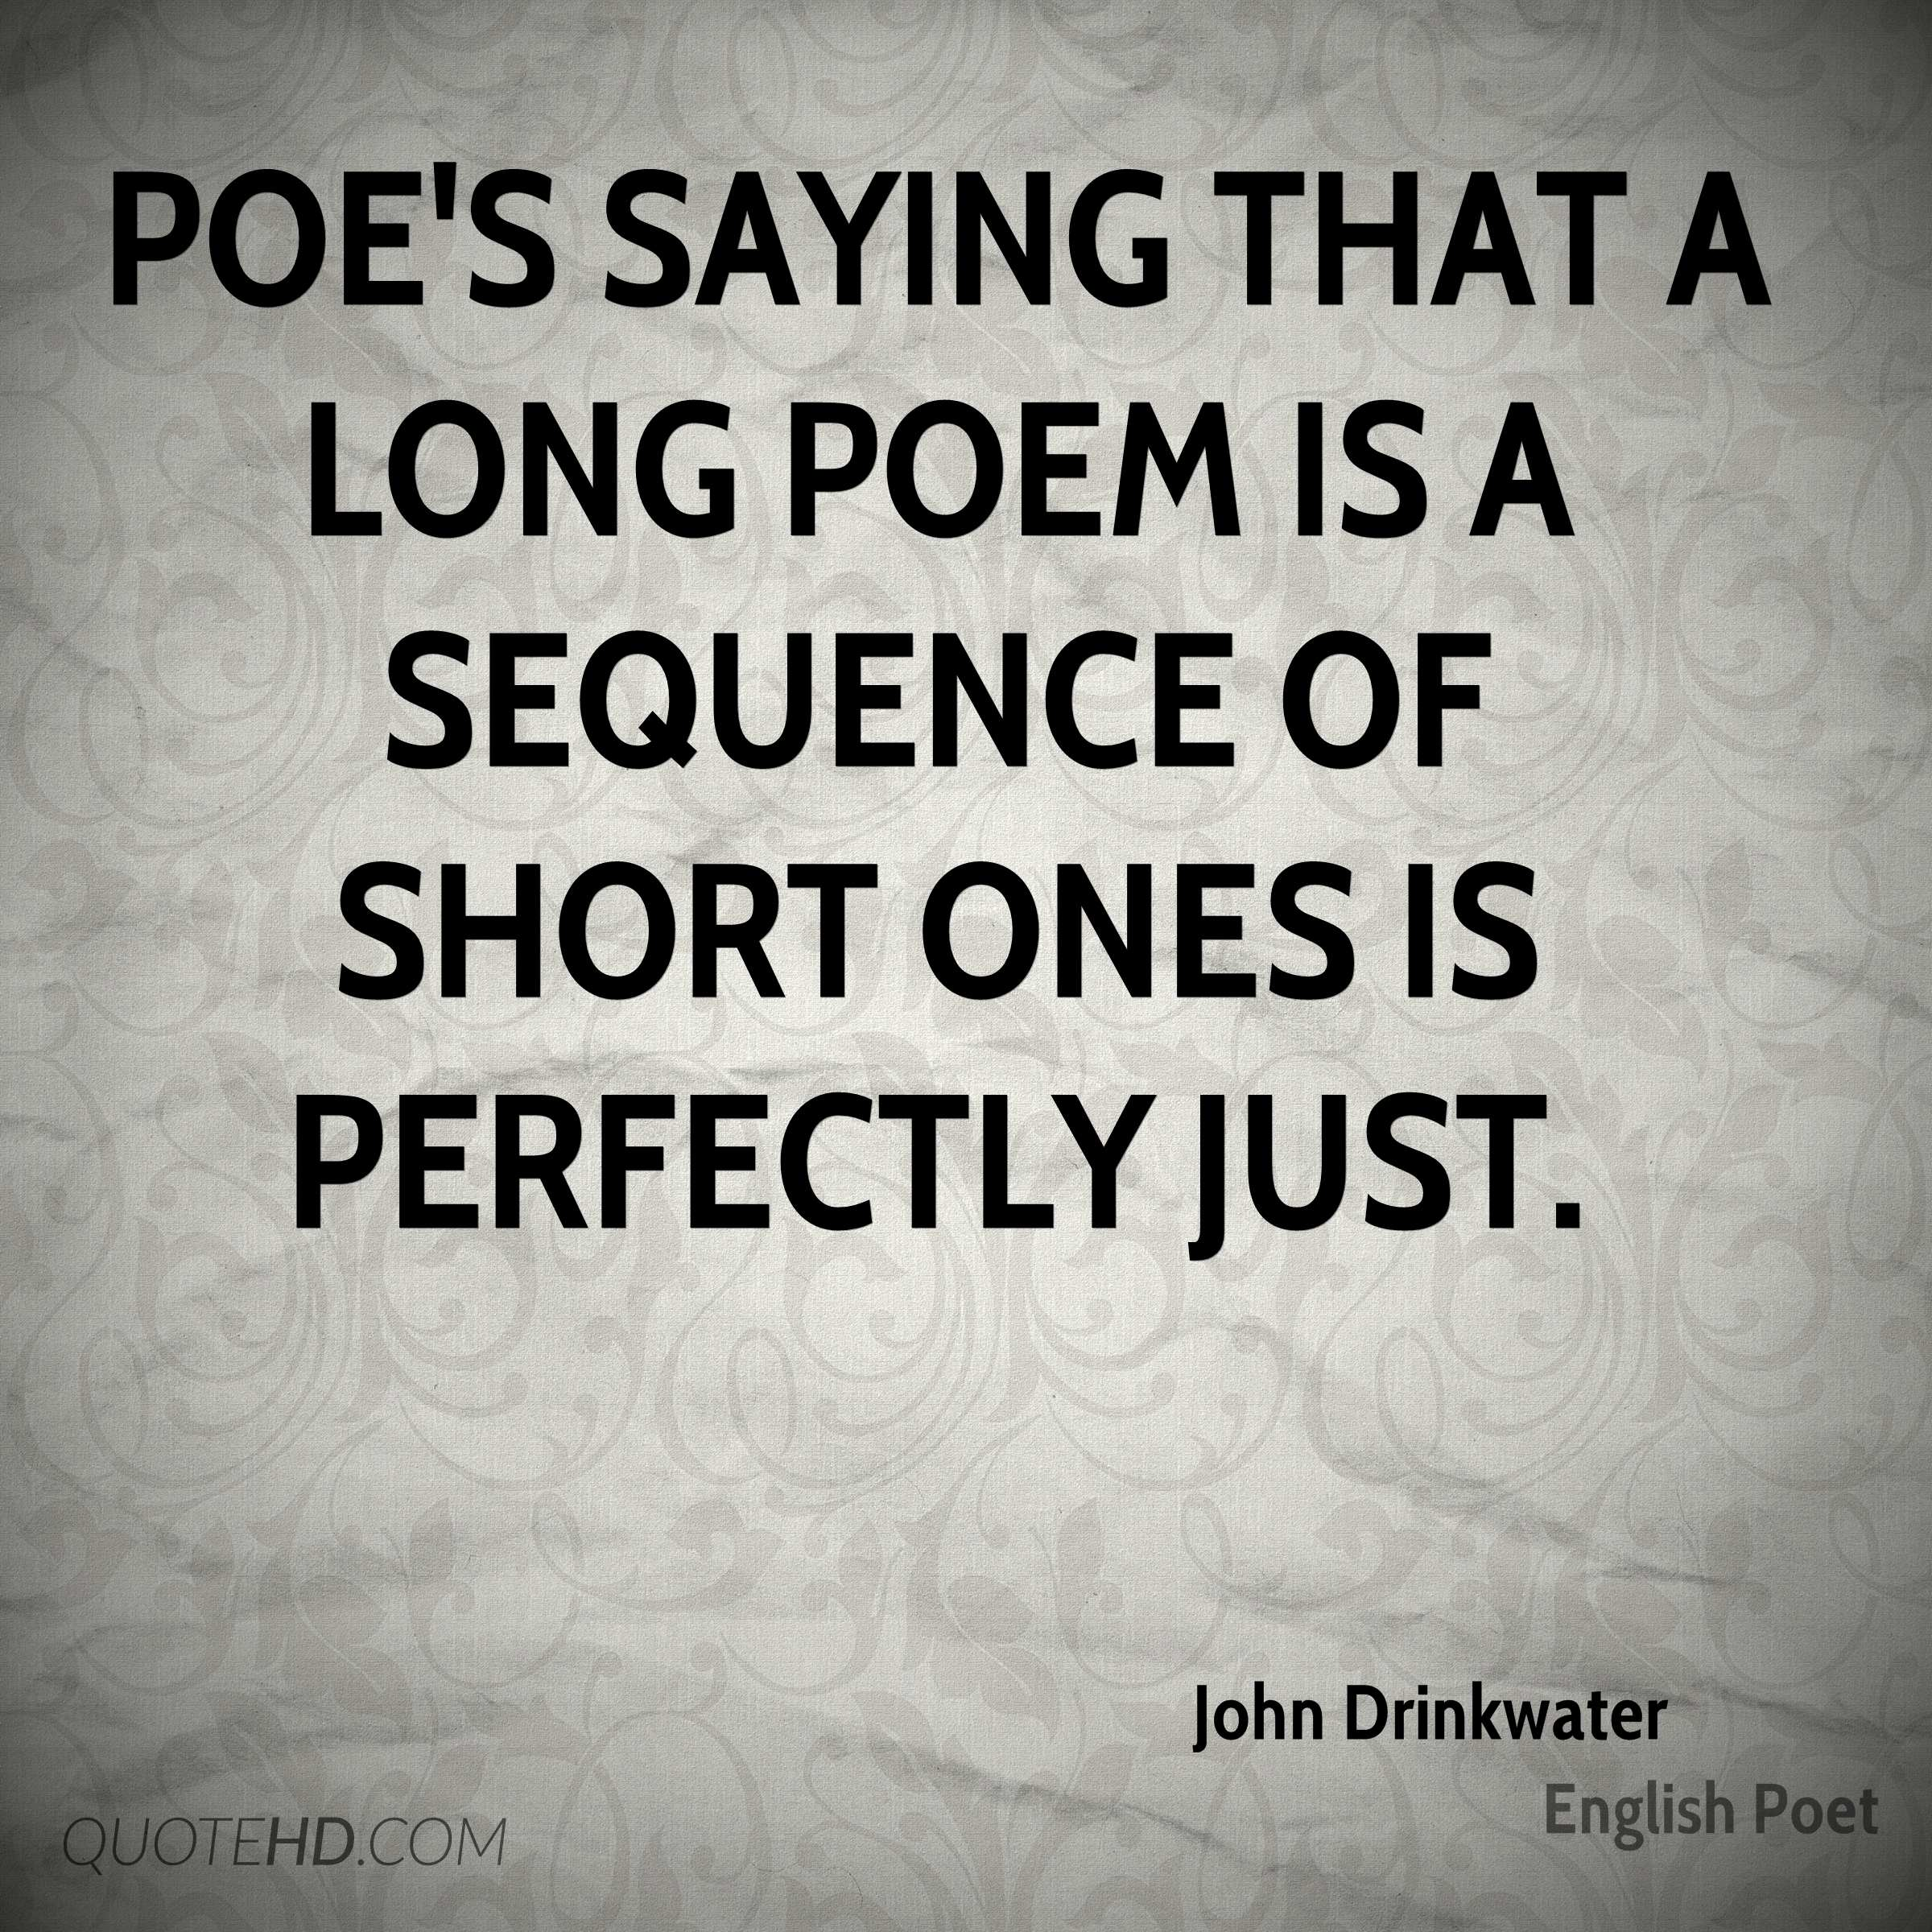 Poe's saying that a long poem is a sequence of short ones is perfectly just.